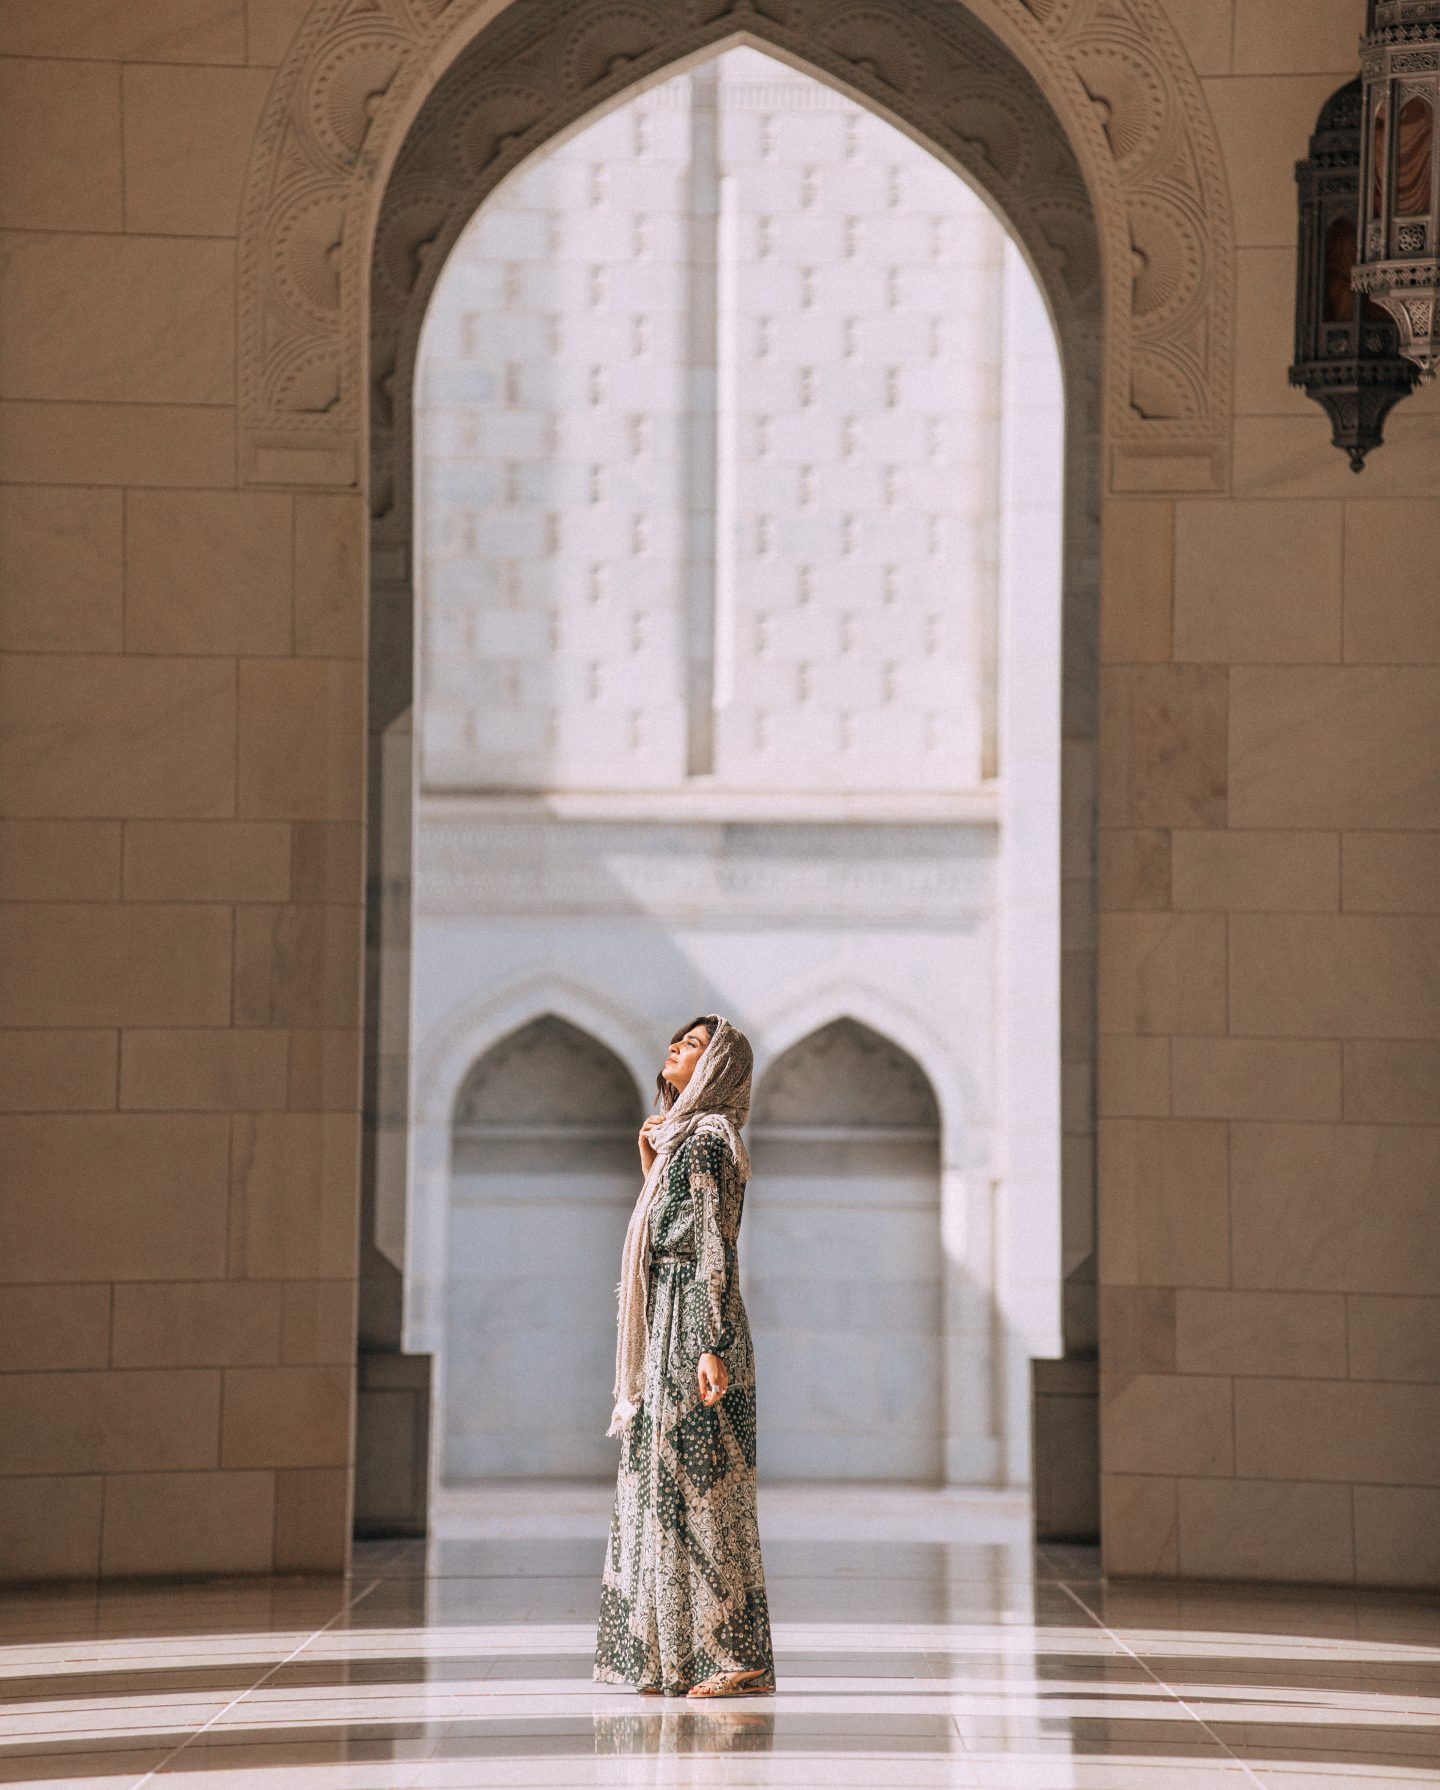 A woman in Sultan Qaboos Grand Mosque in Muscat, Oman